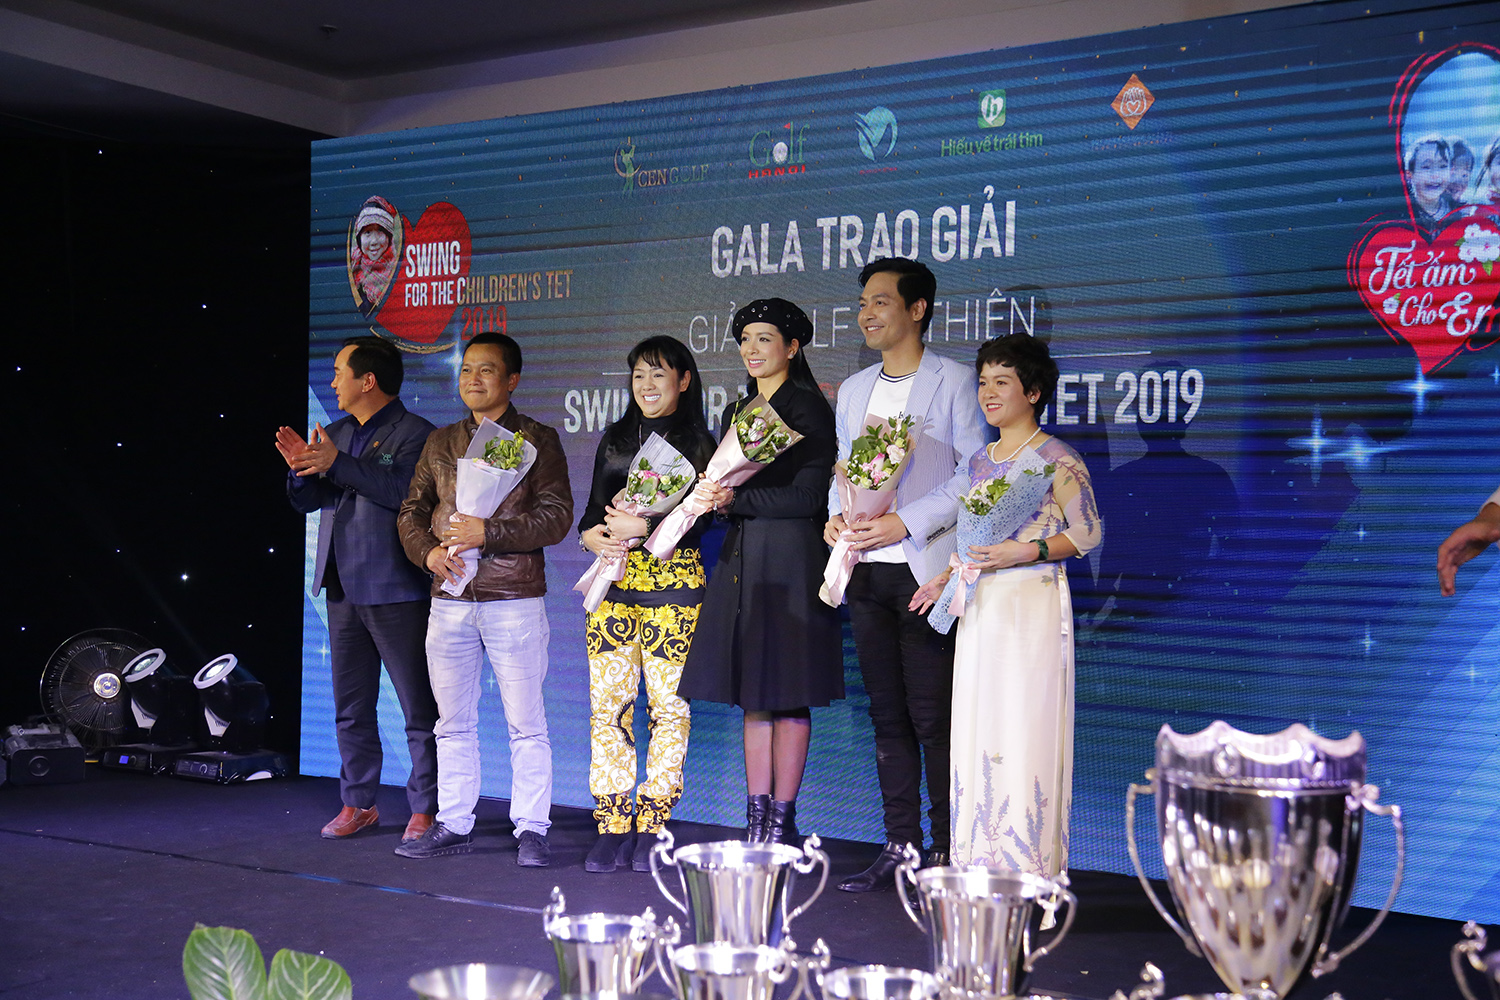 Giải golf từ thiện: Swing for the children's Tet 2019